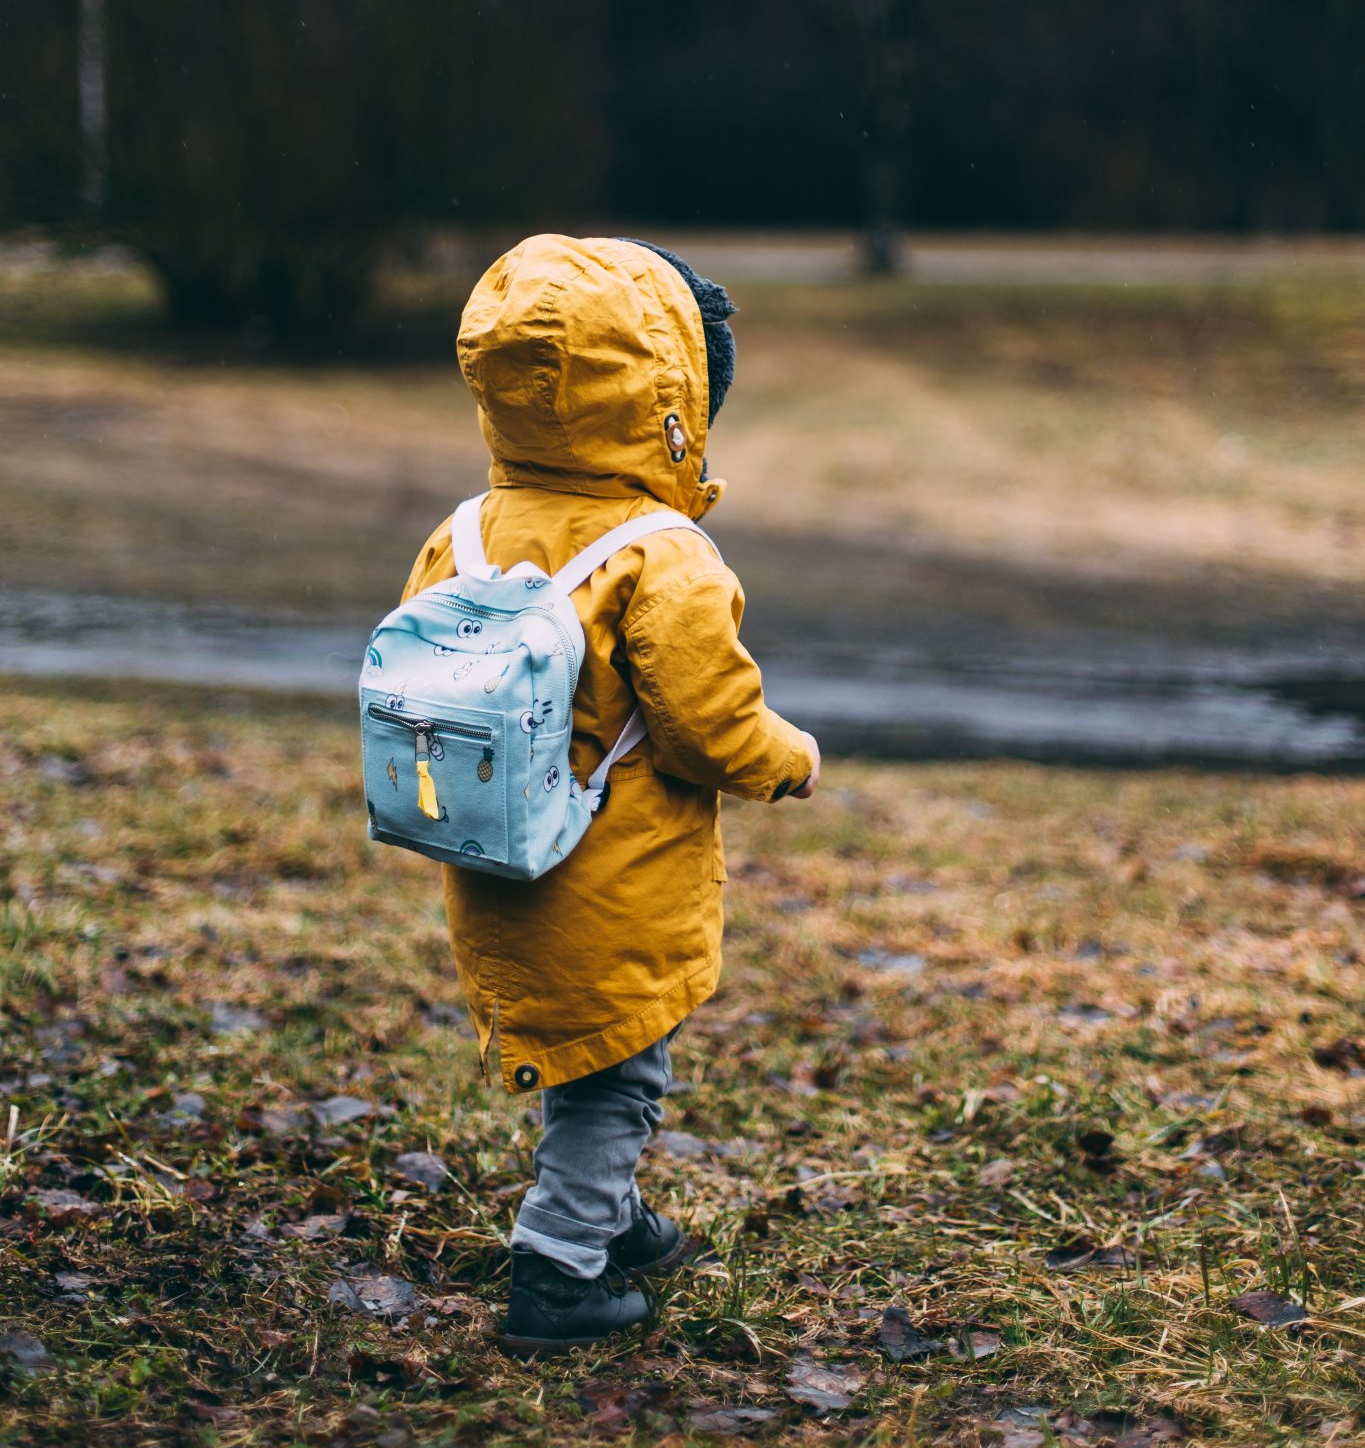 Toddler in yellow coat and backpack in the park